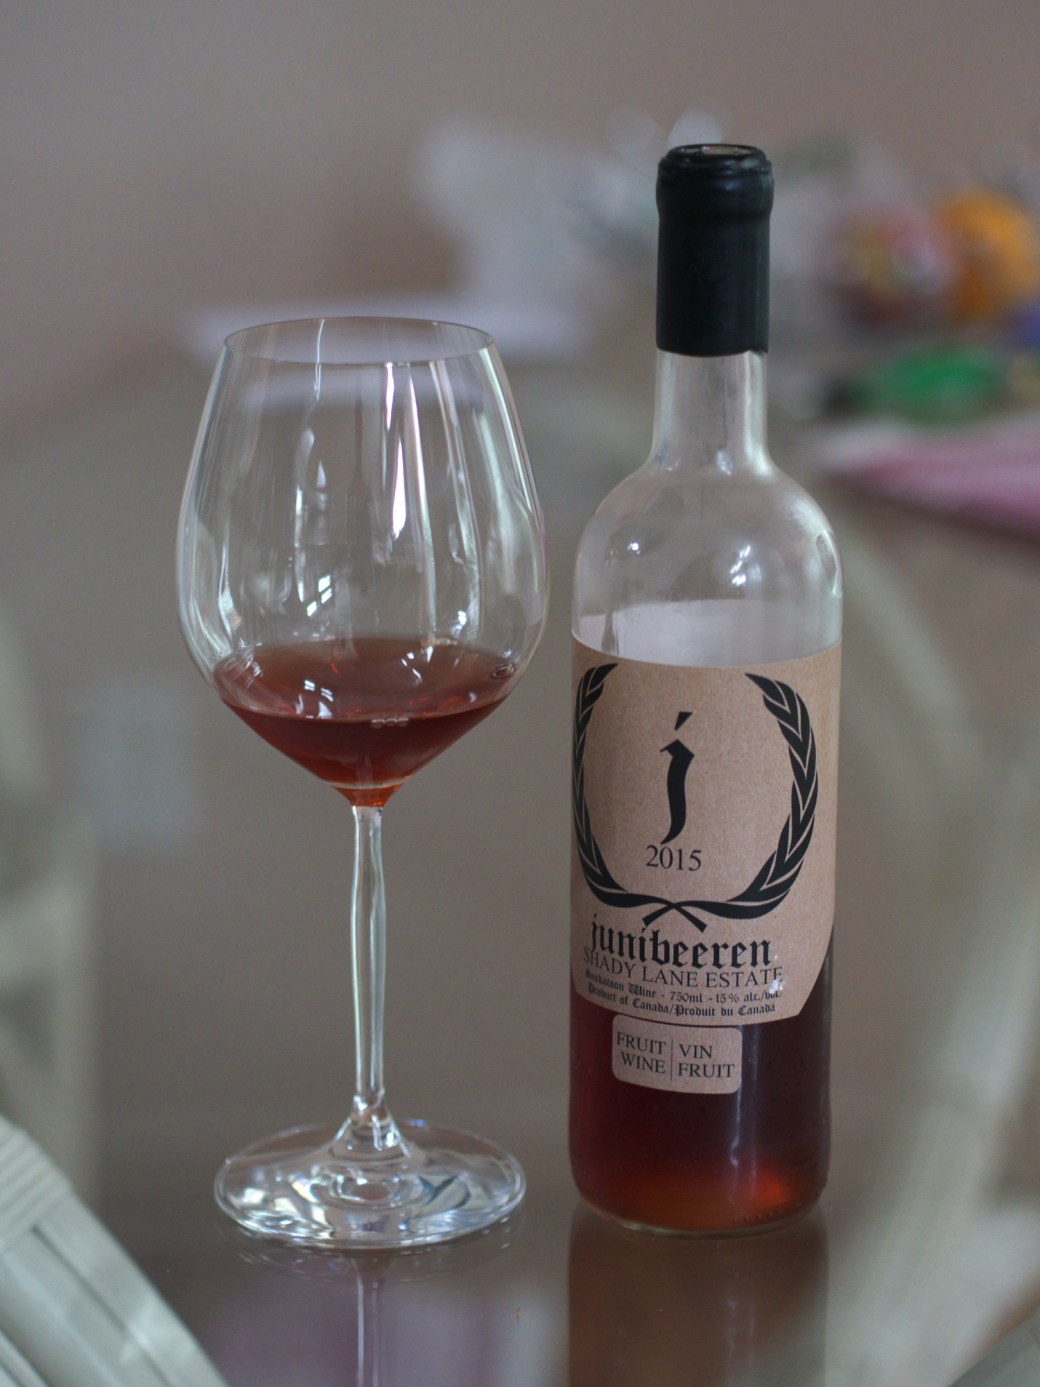 A bottle and glass of Saskatoon wine from Shady Lane Estate Winery